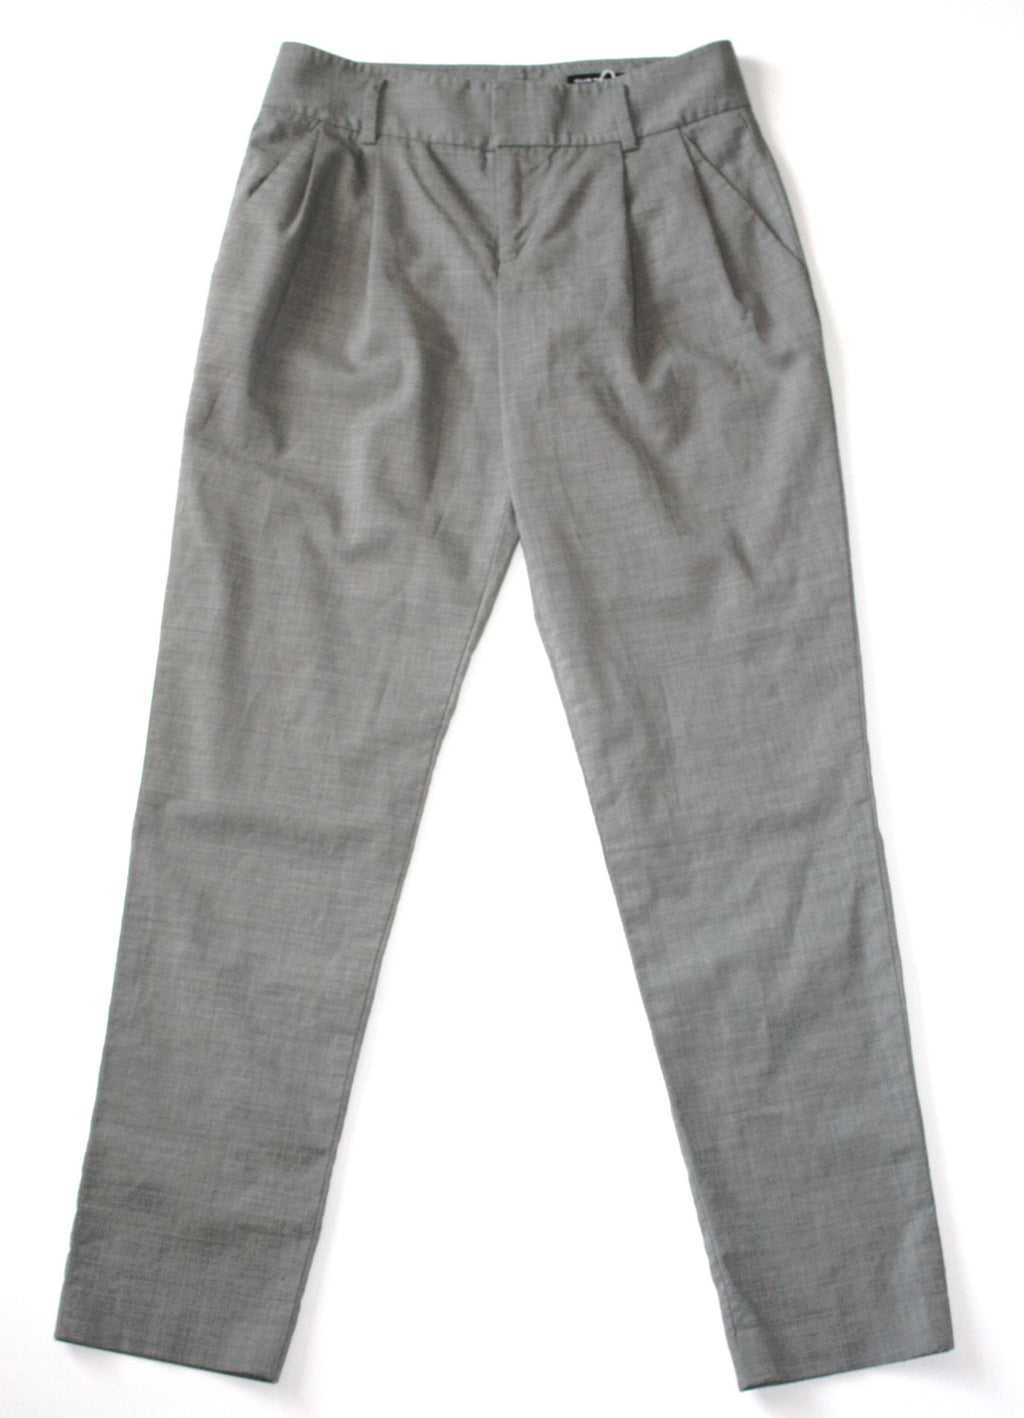 Club Monaco Grey High Waist Pants - Joyce's Closet  - 1